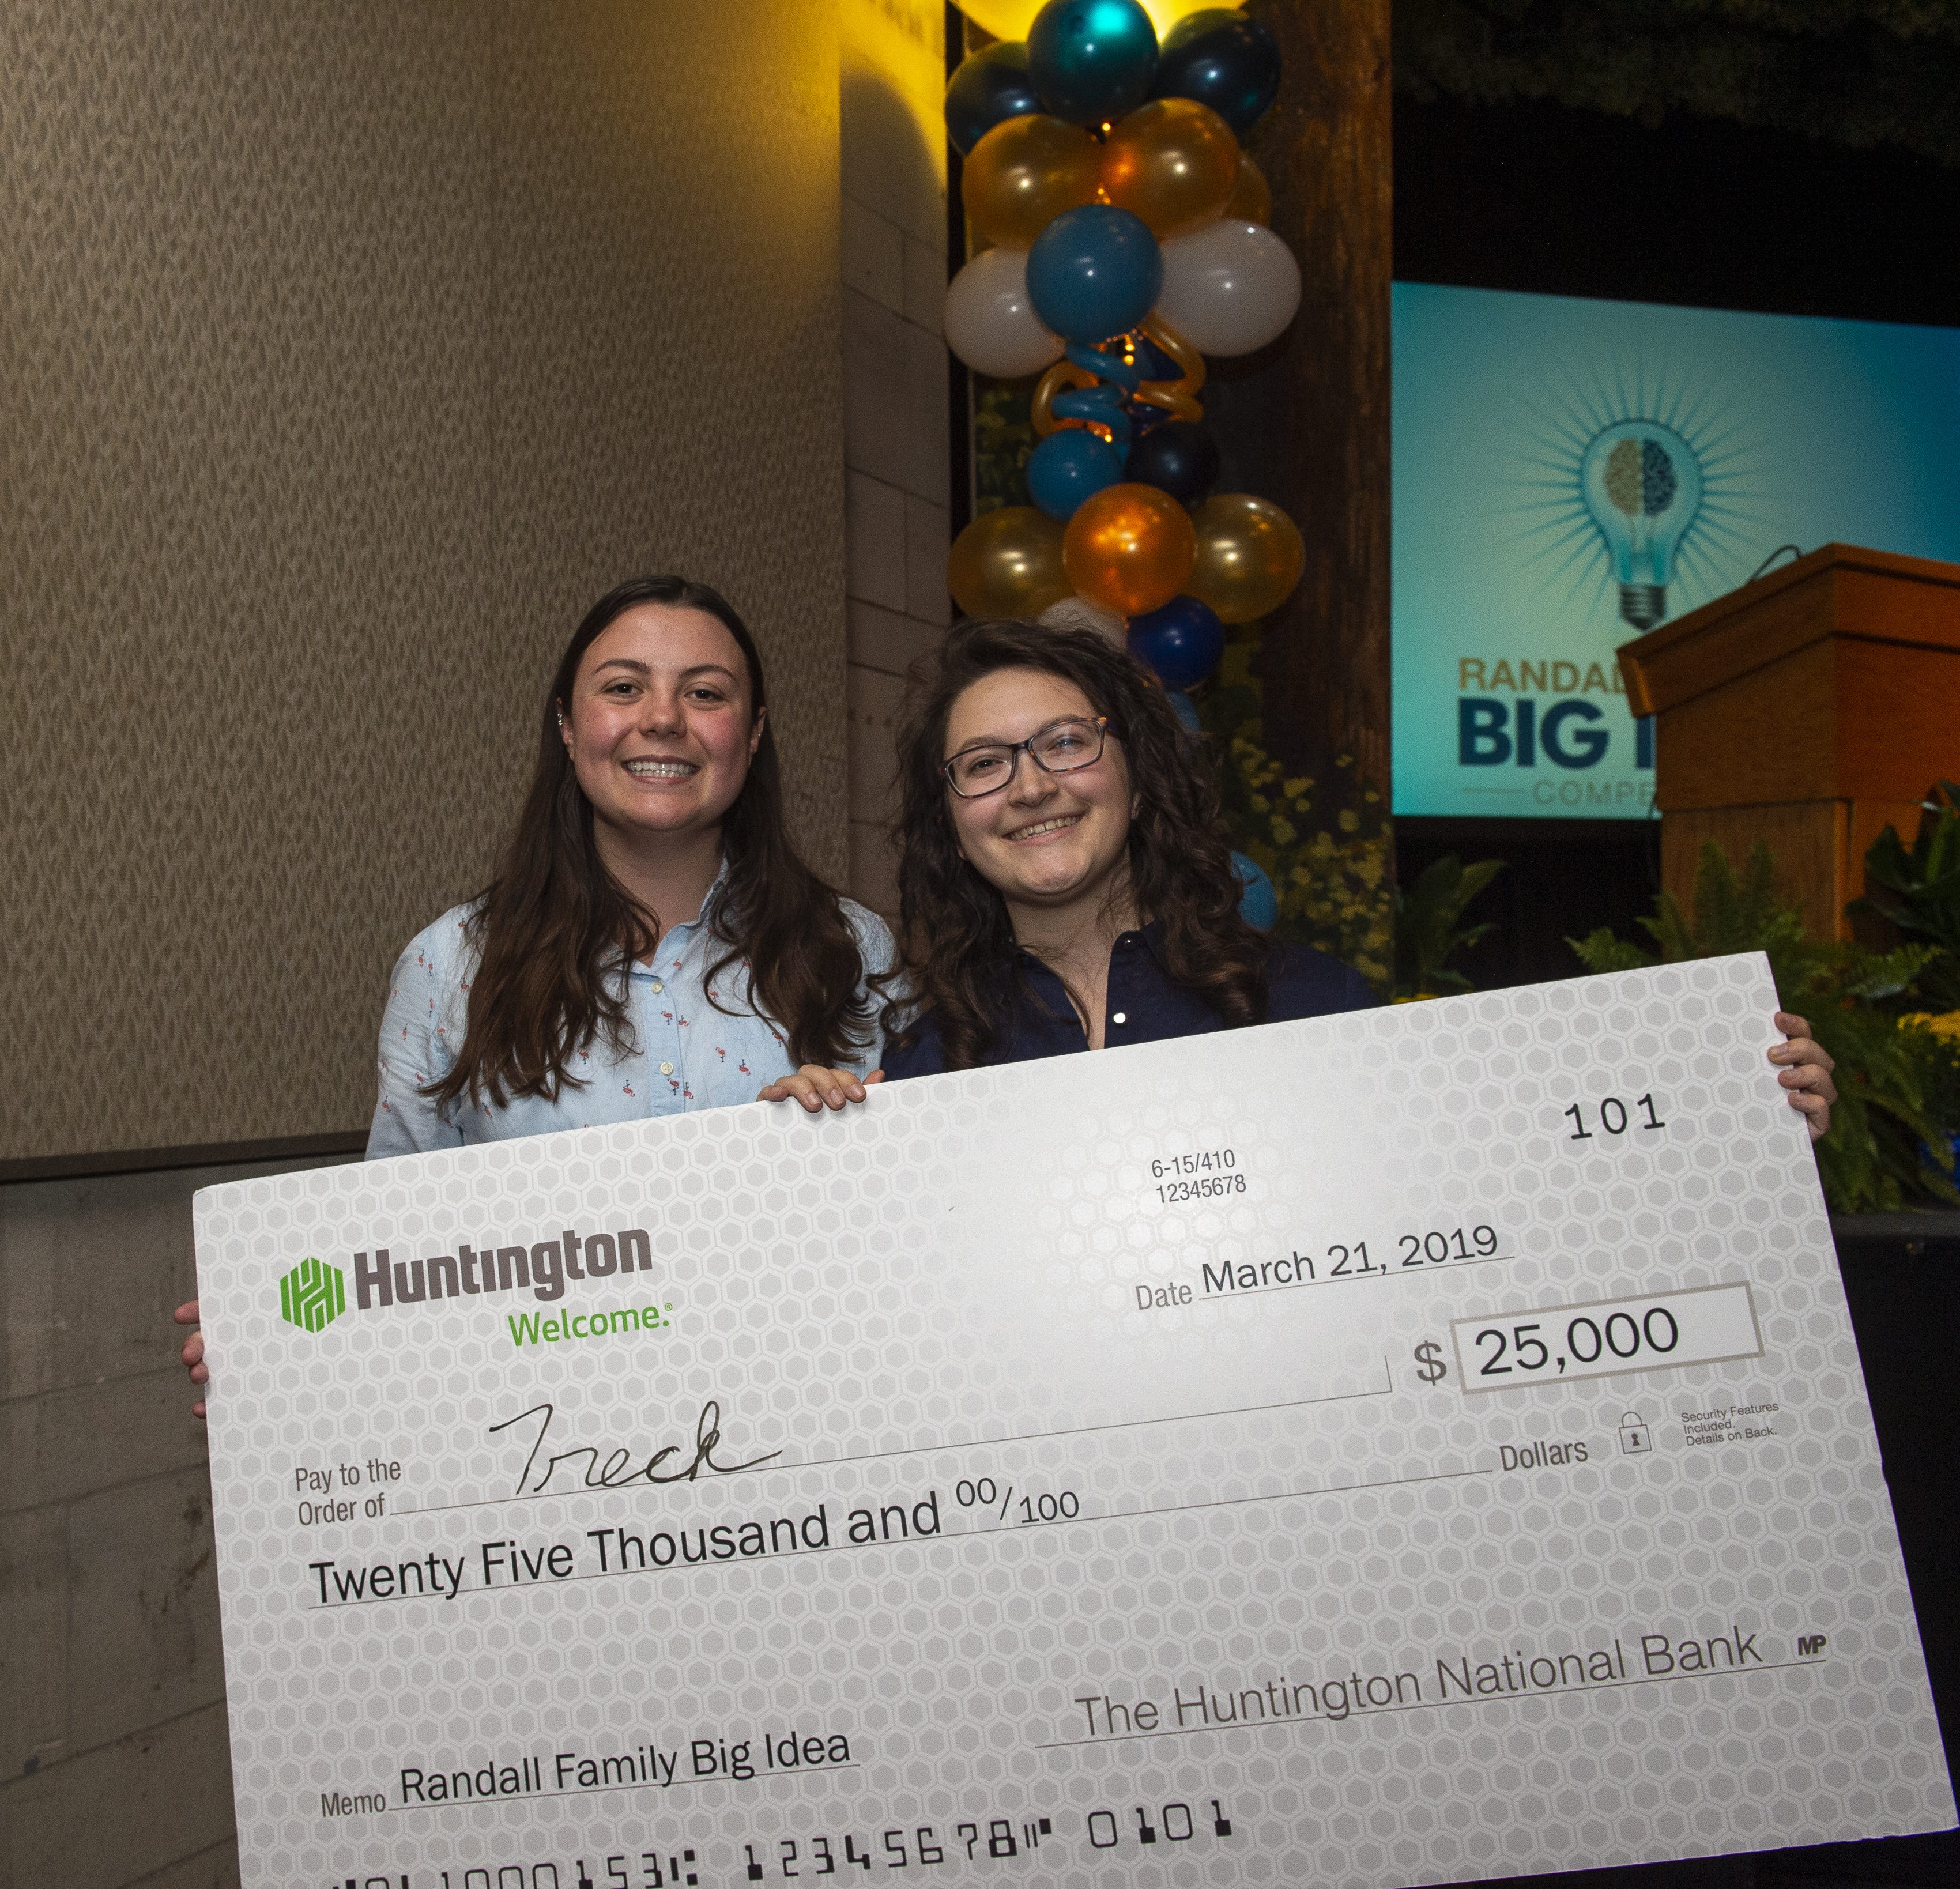 Randall Family Big Idea Competition